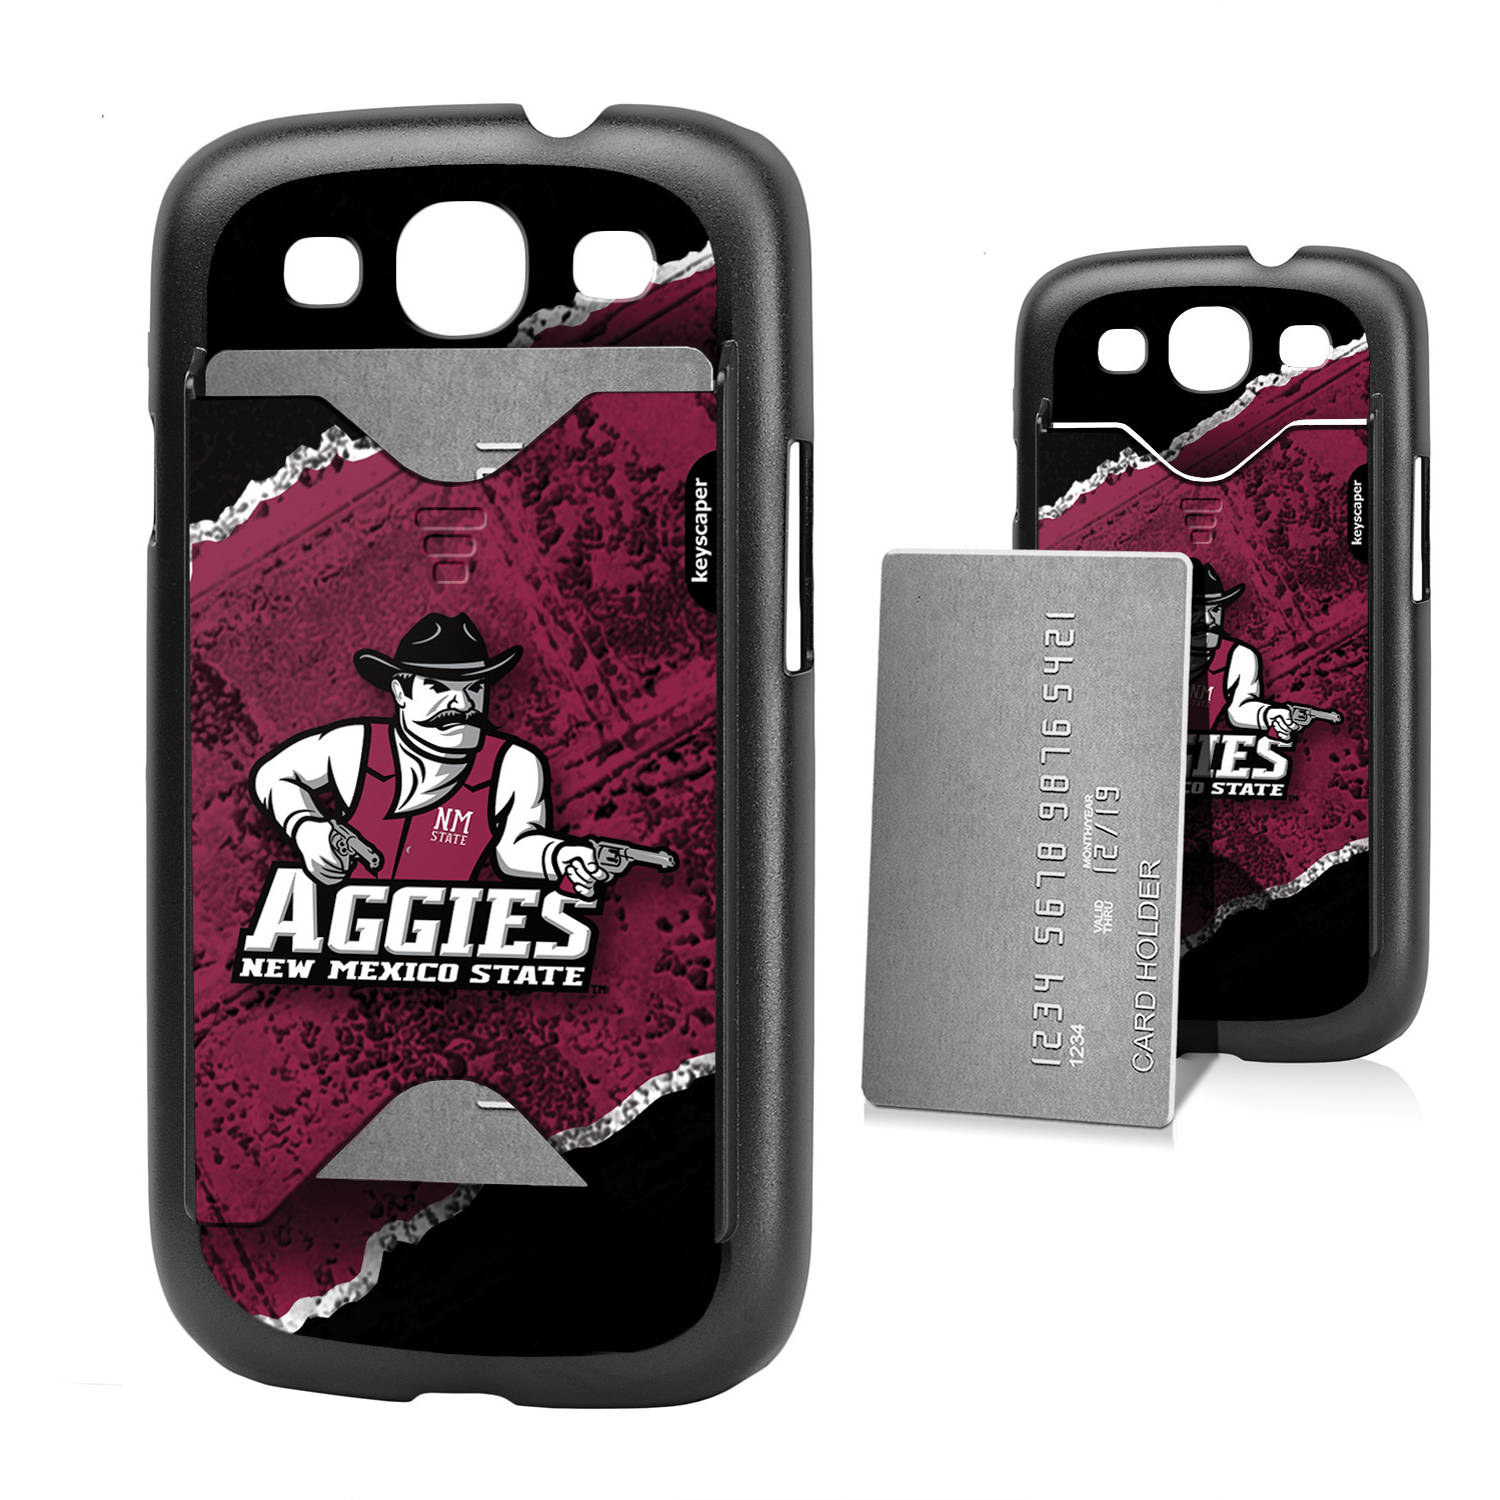 New Mexico State Aggies Galaxy S3 Credit Card Case